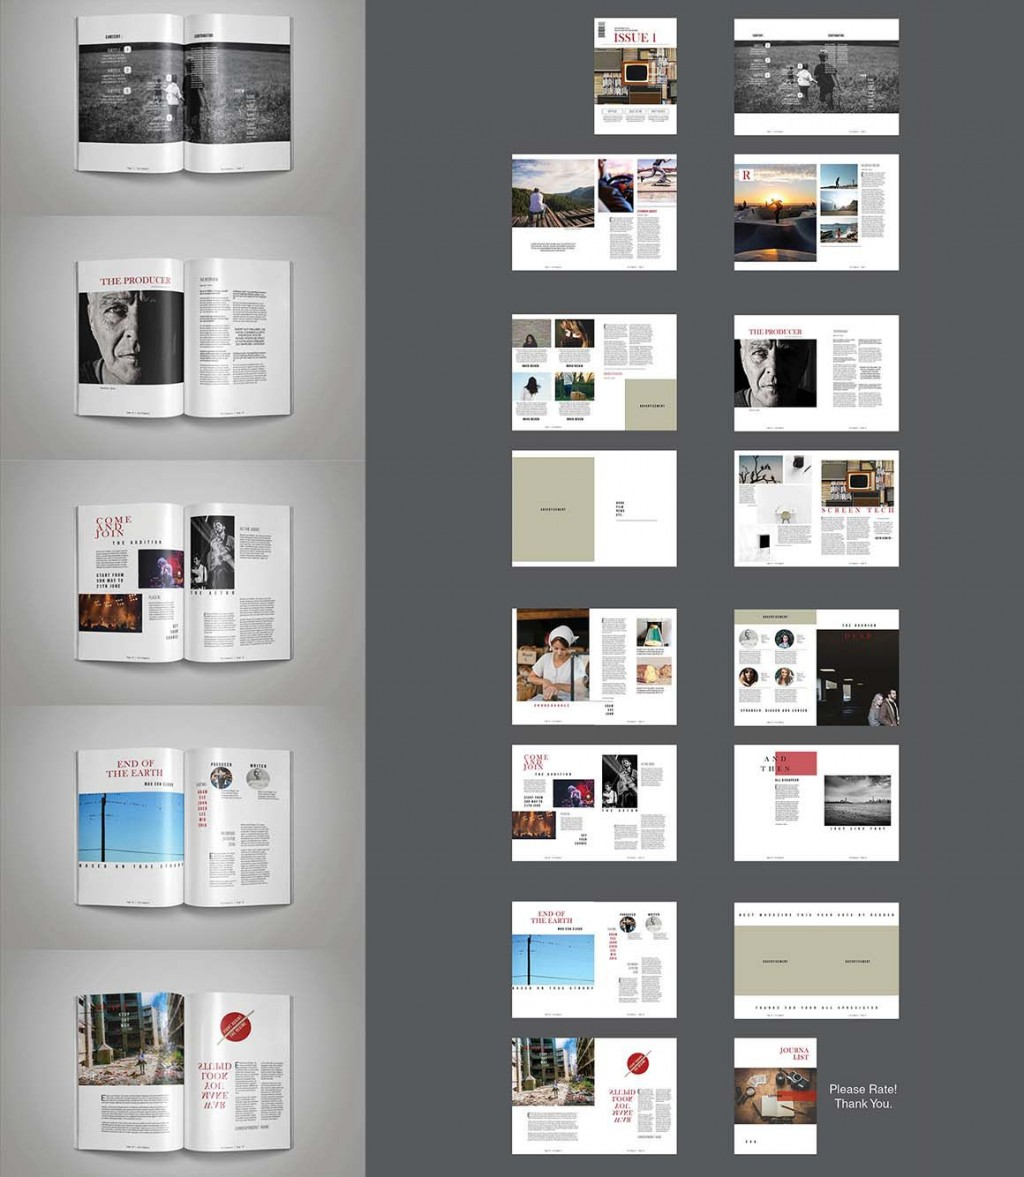 009 Stirring Free Magazine Layout Template Example  Templates For Word Microsoft PowerpointLarge